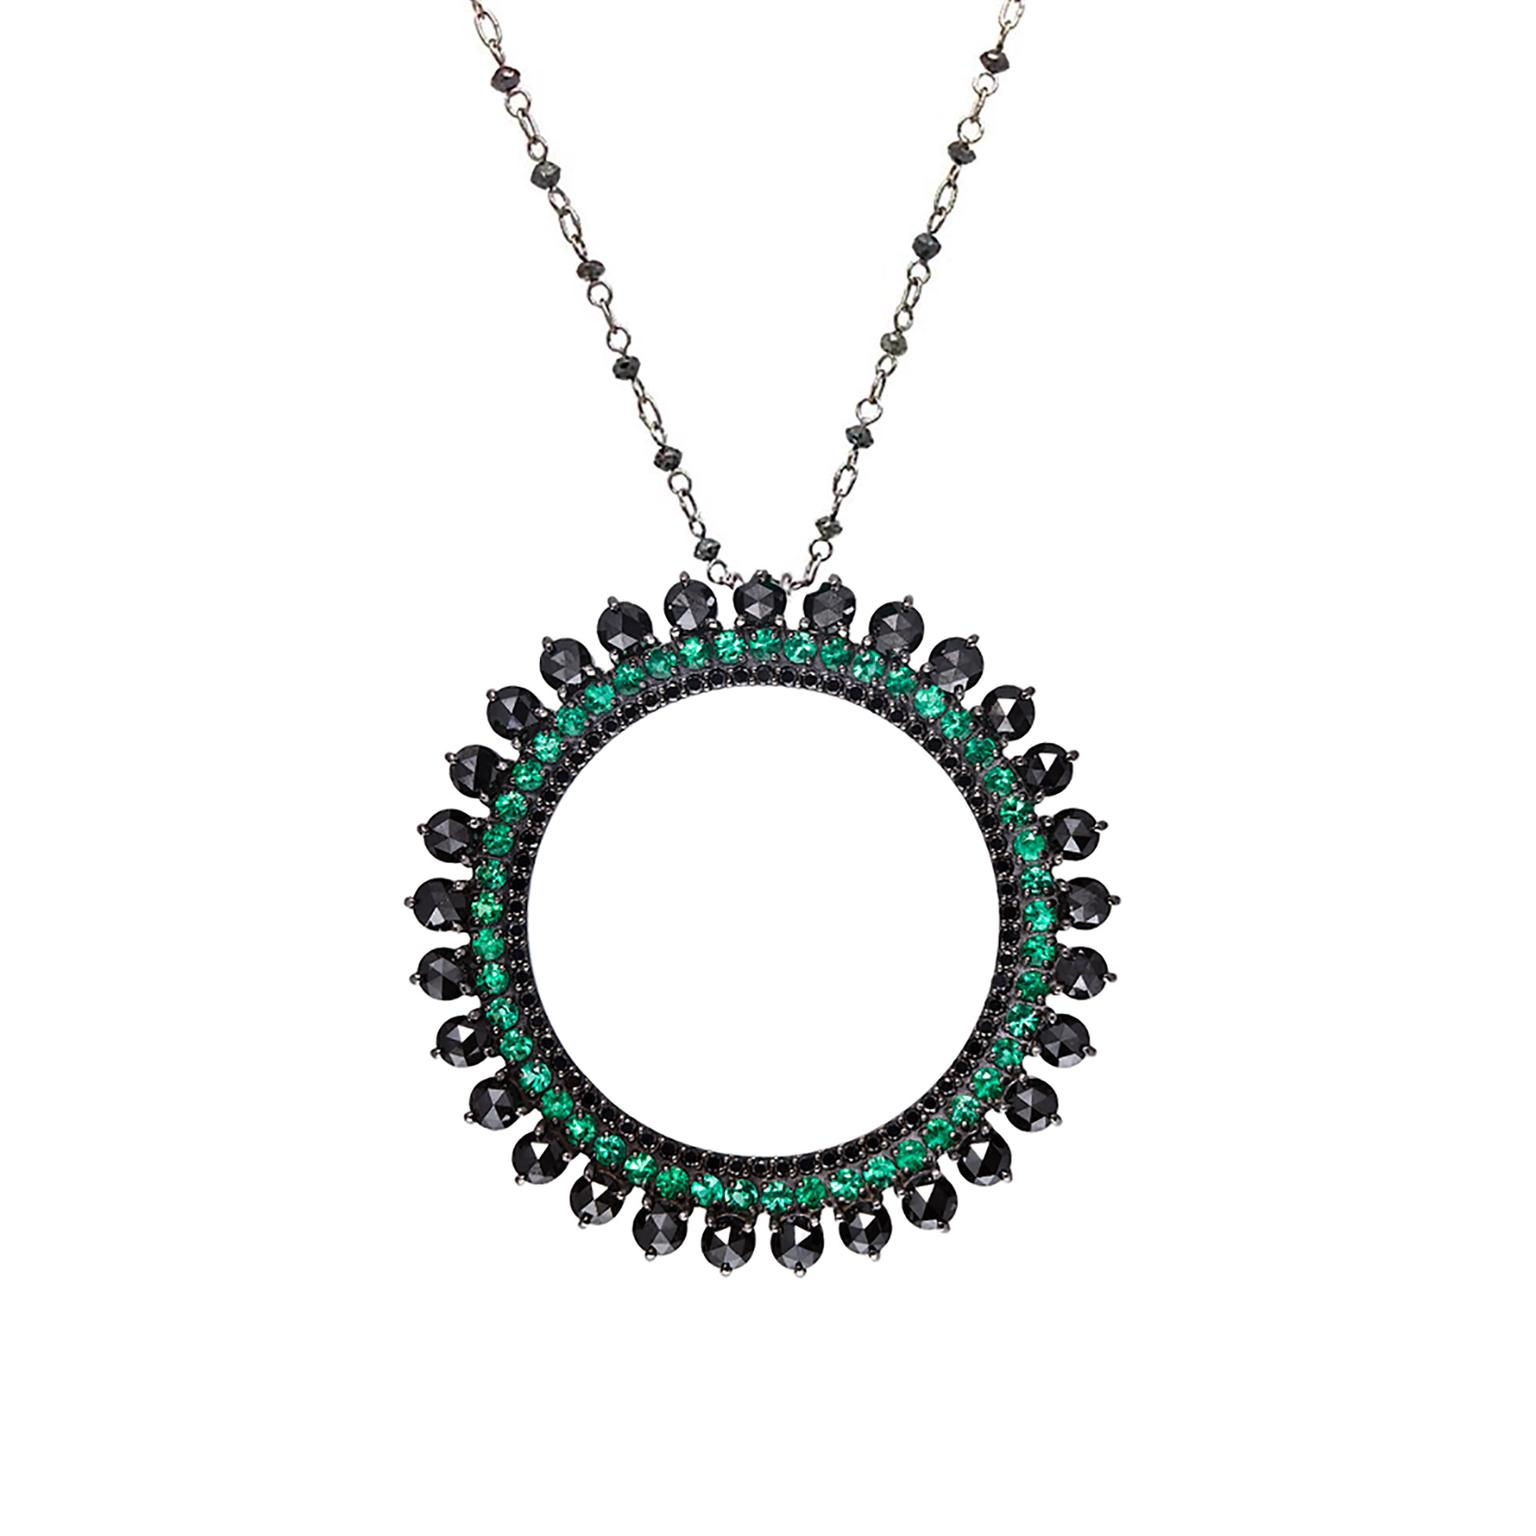 Carla Amorim Vitoria Regia emerald and diamond pendant